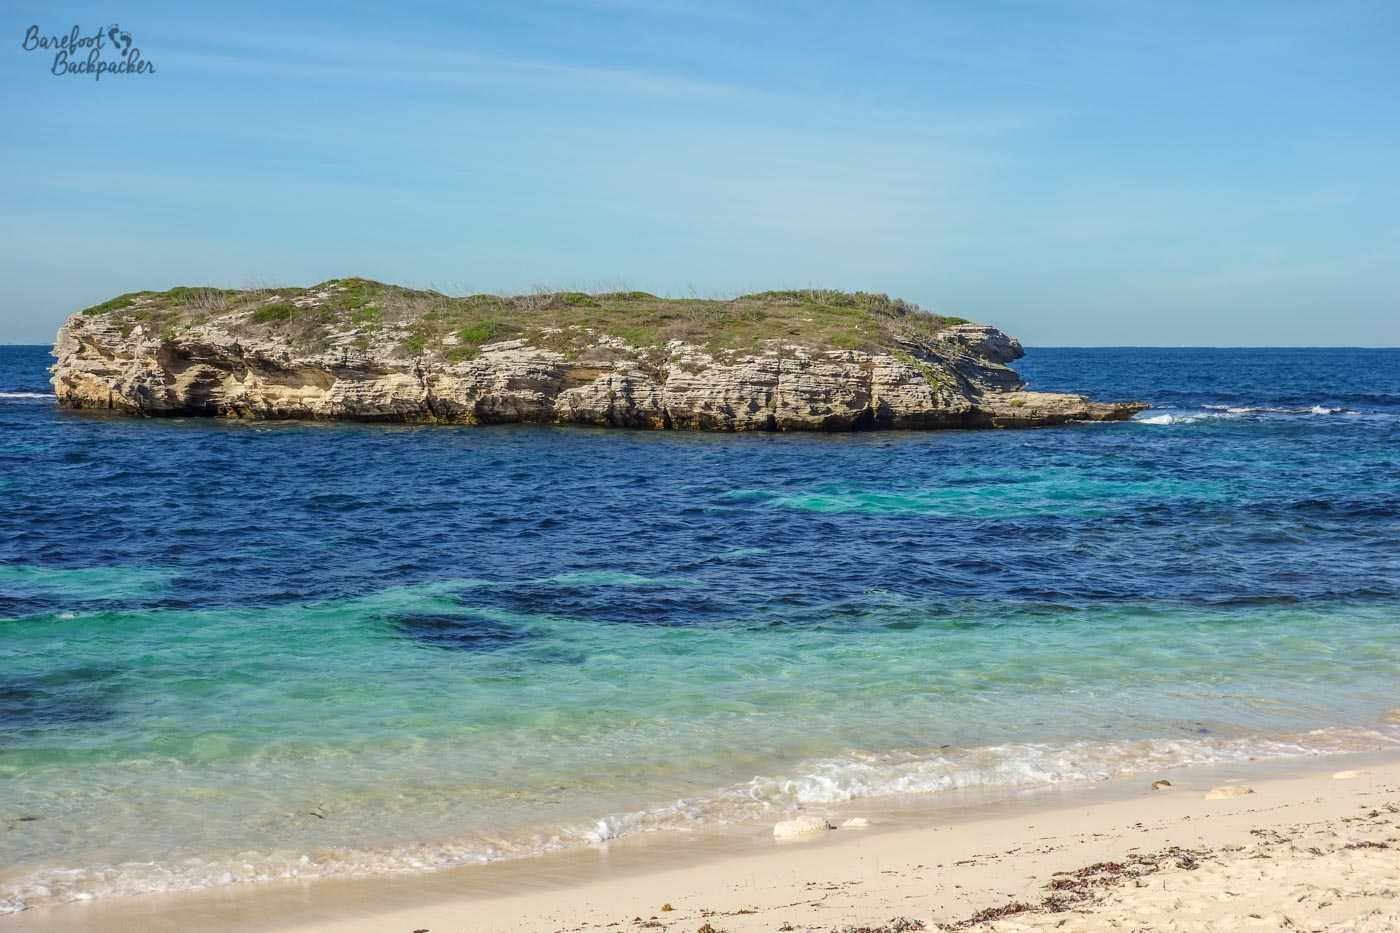 One of the beaches on the shoreline of Rottnest Island. The water is tropically clear blue, the sand pale, and a short way into the sea is a rocky island with steep cliffs. It's akin to the tropical paradise beaches you might have read about.